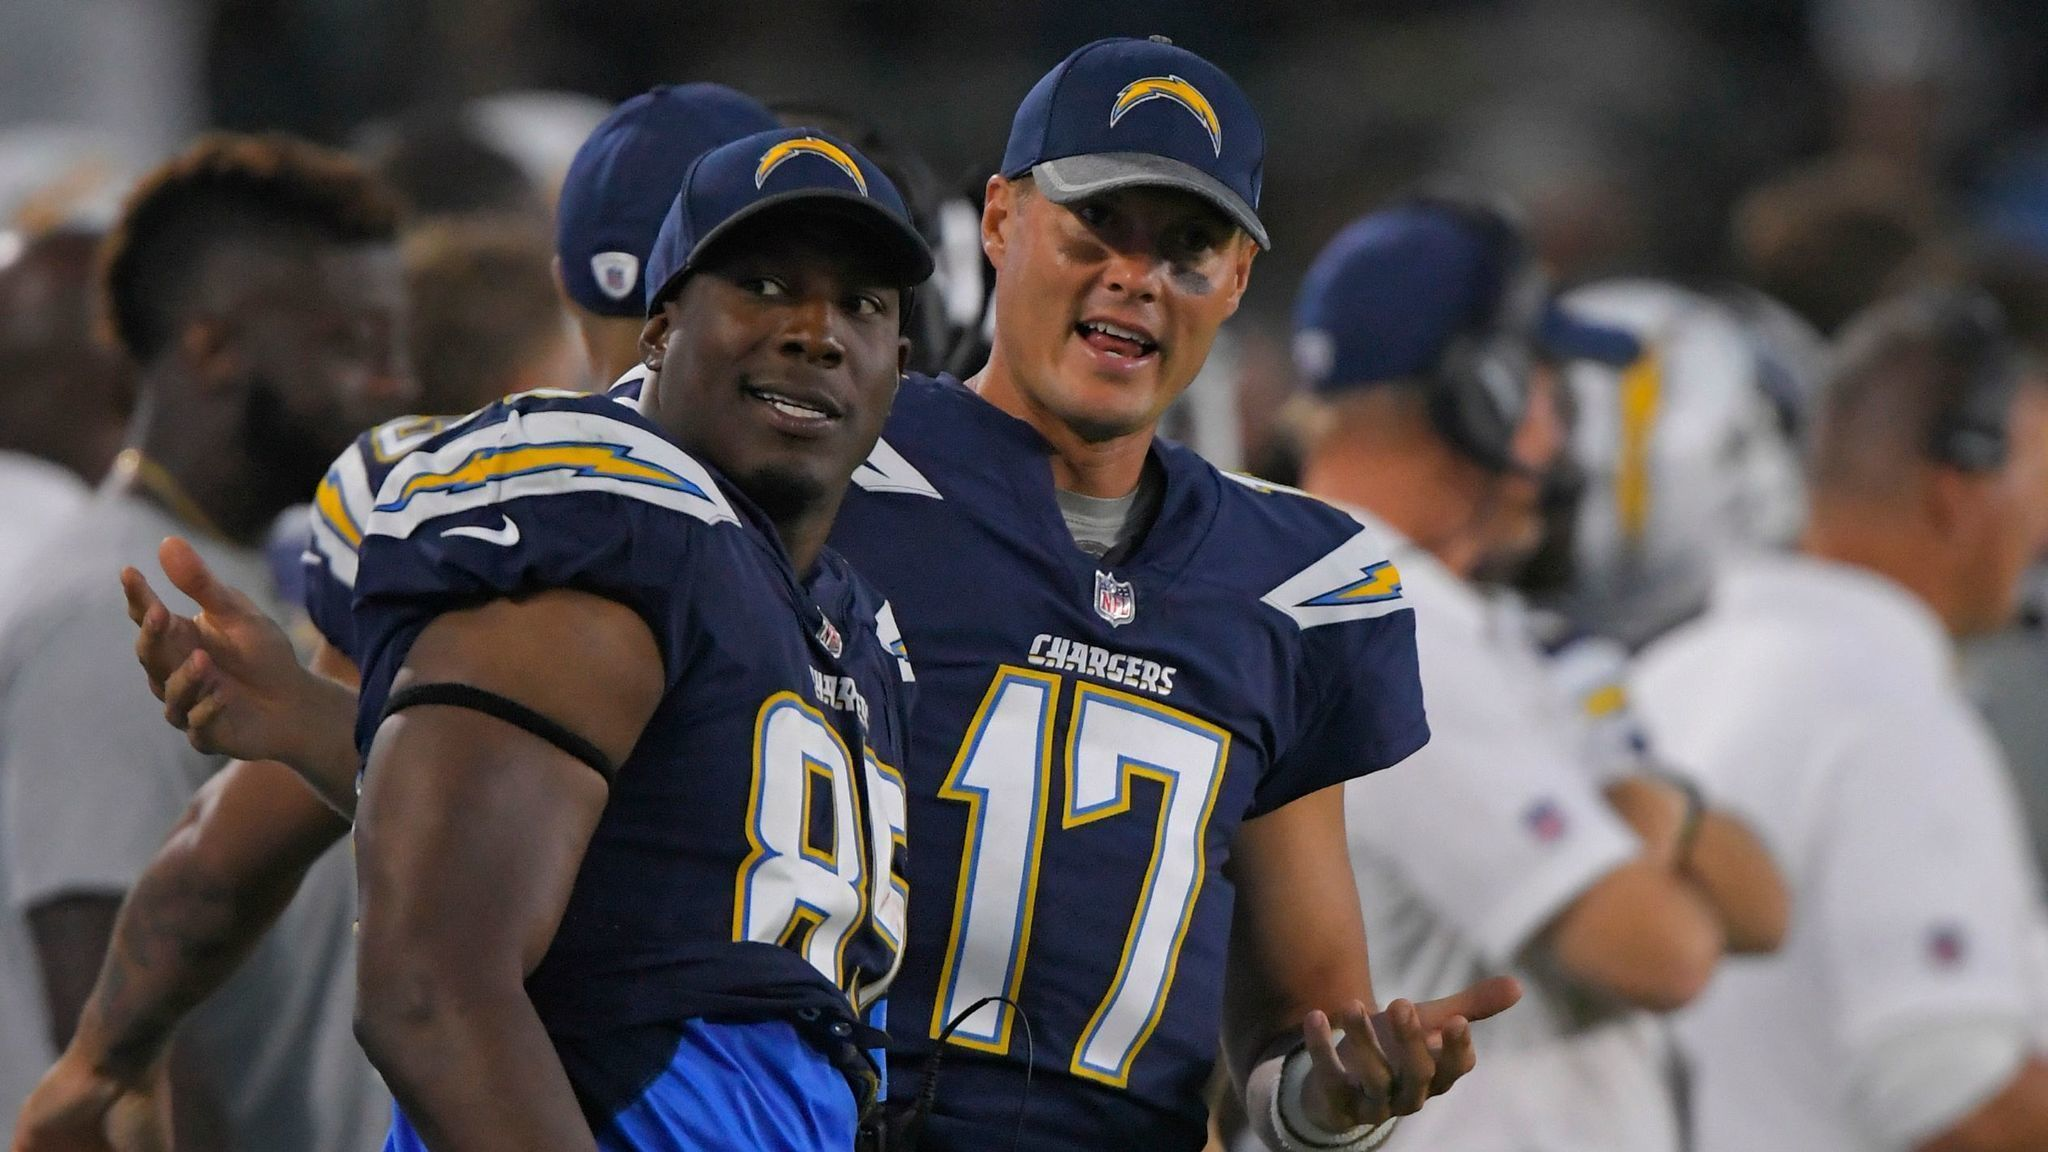 Sd-sp-chargers-starters-outplay-seahawks-behind-rivers-to-gates-20170813